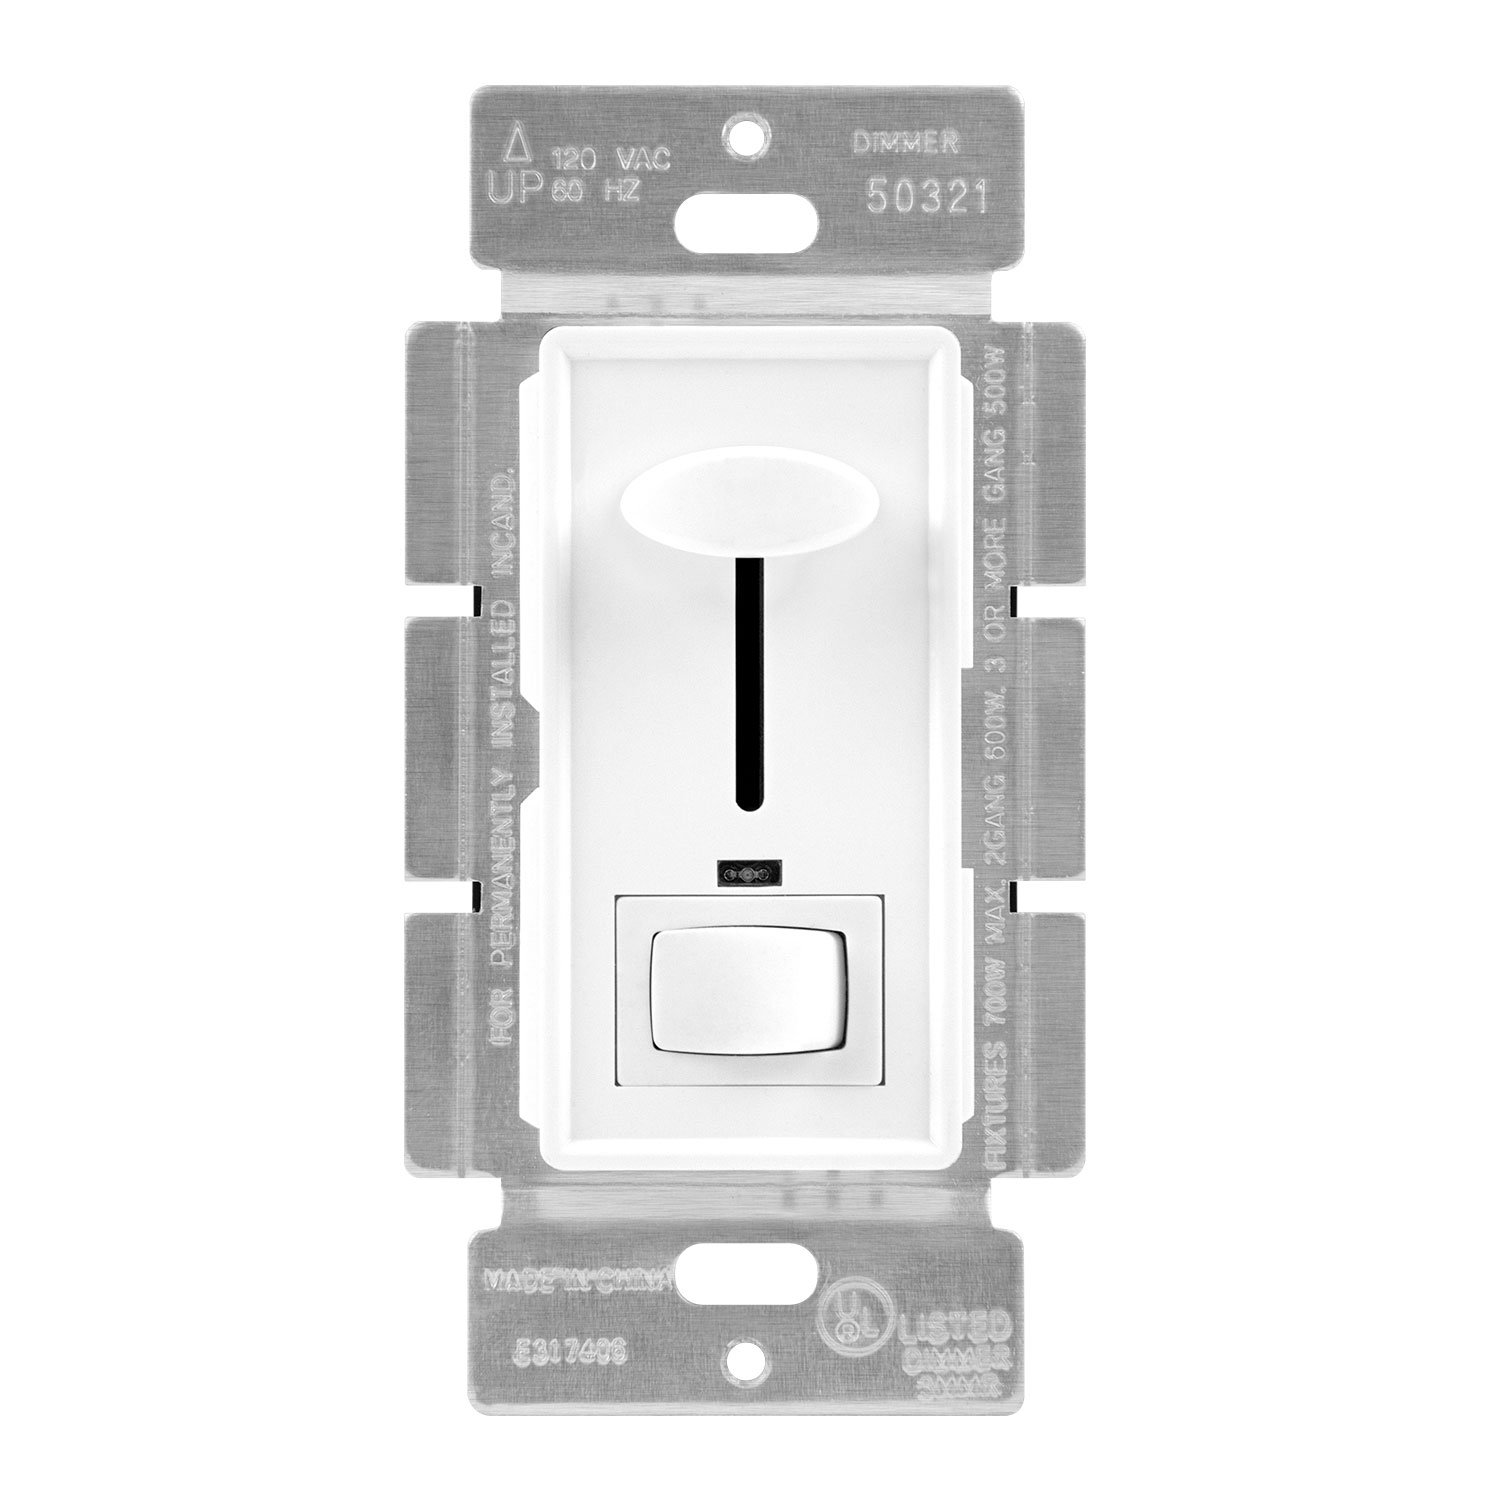 Buy Enerlites 50321 W Sticker Dimmer Switch Toggle By 3 Way To